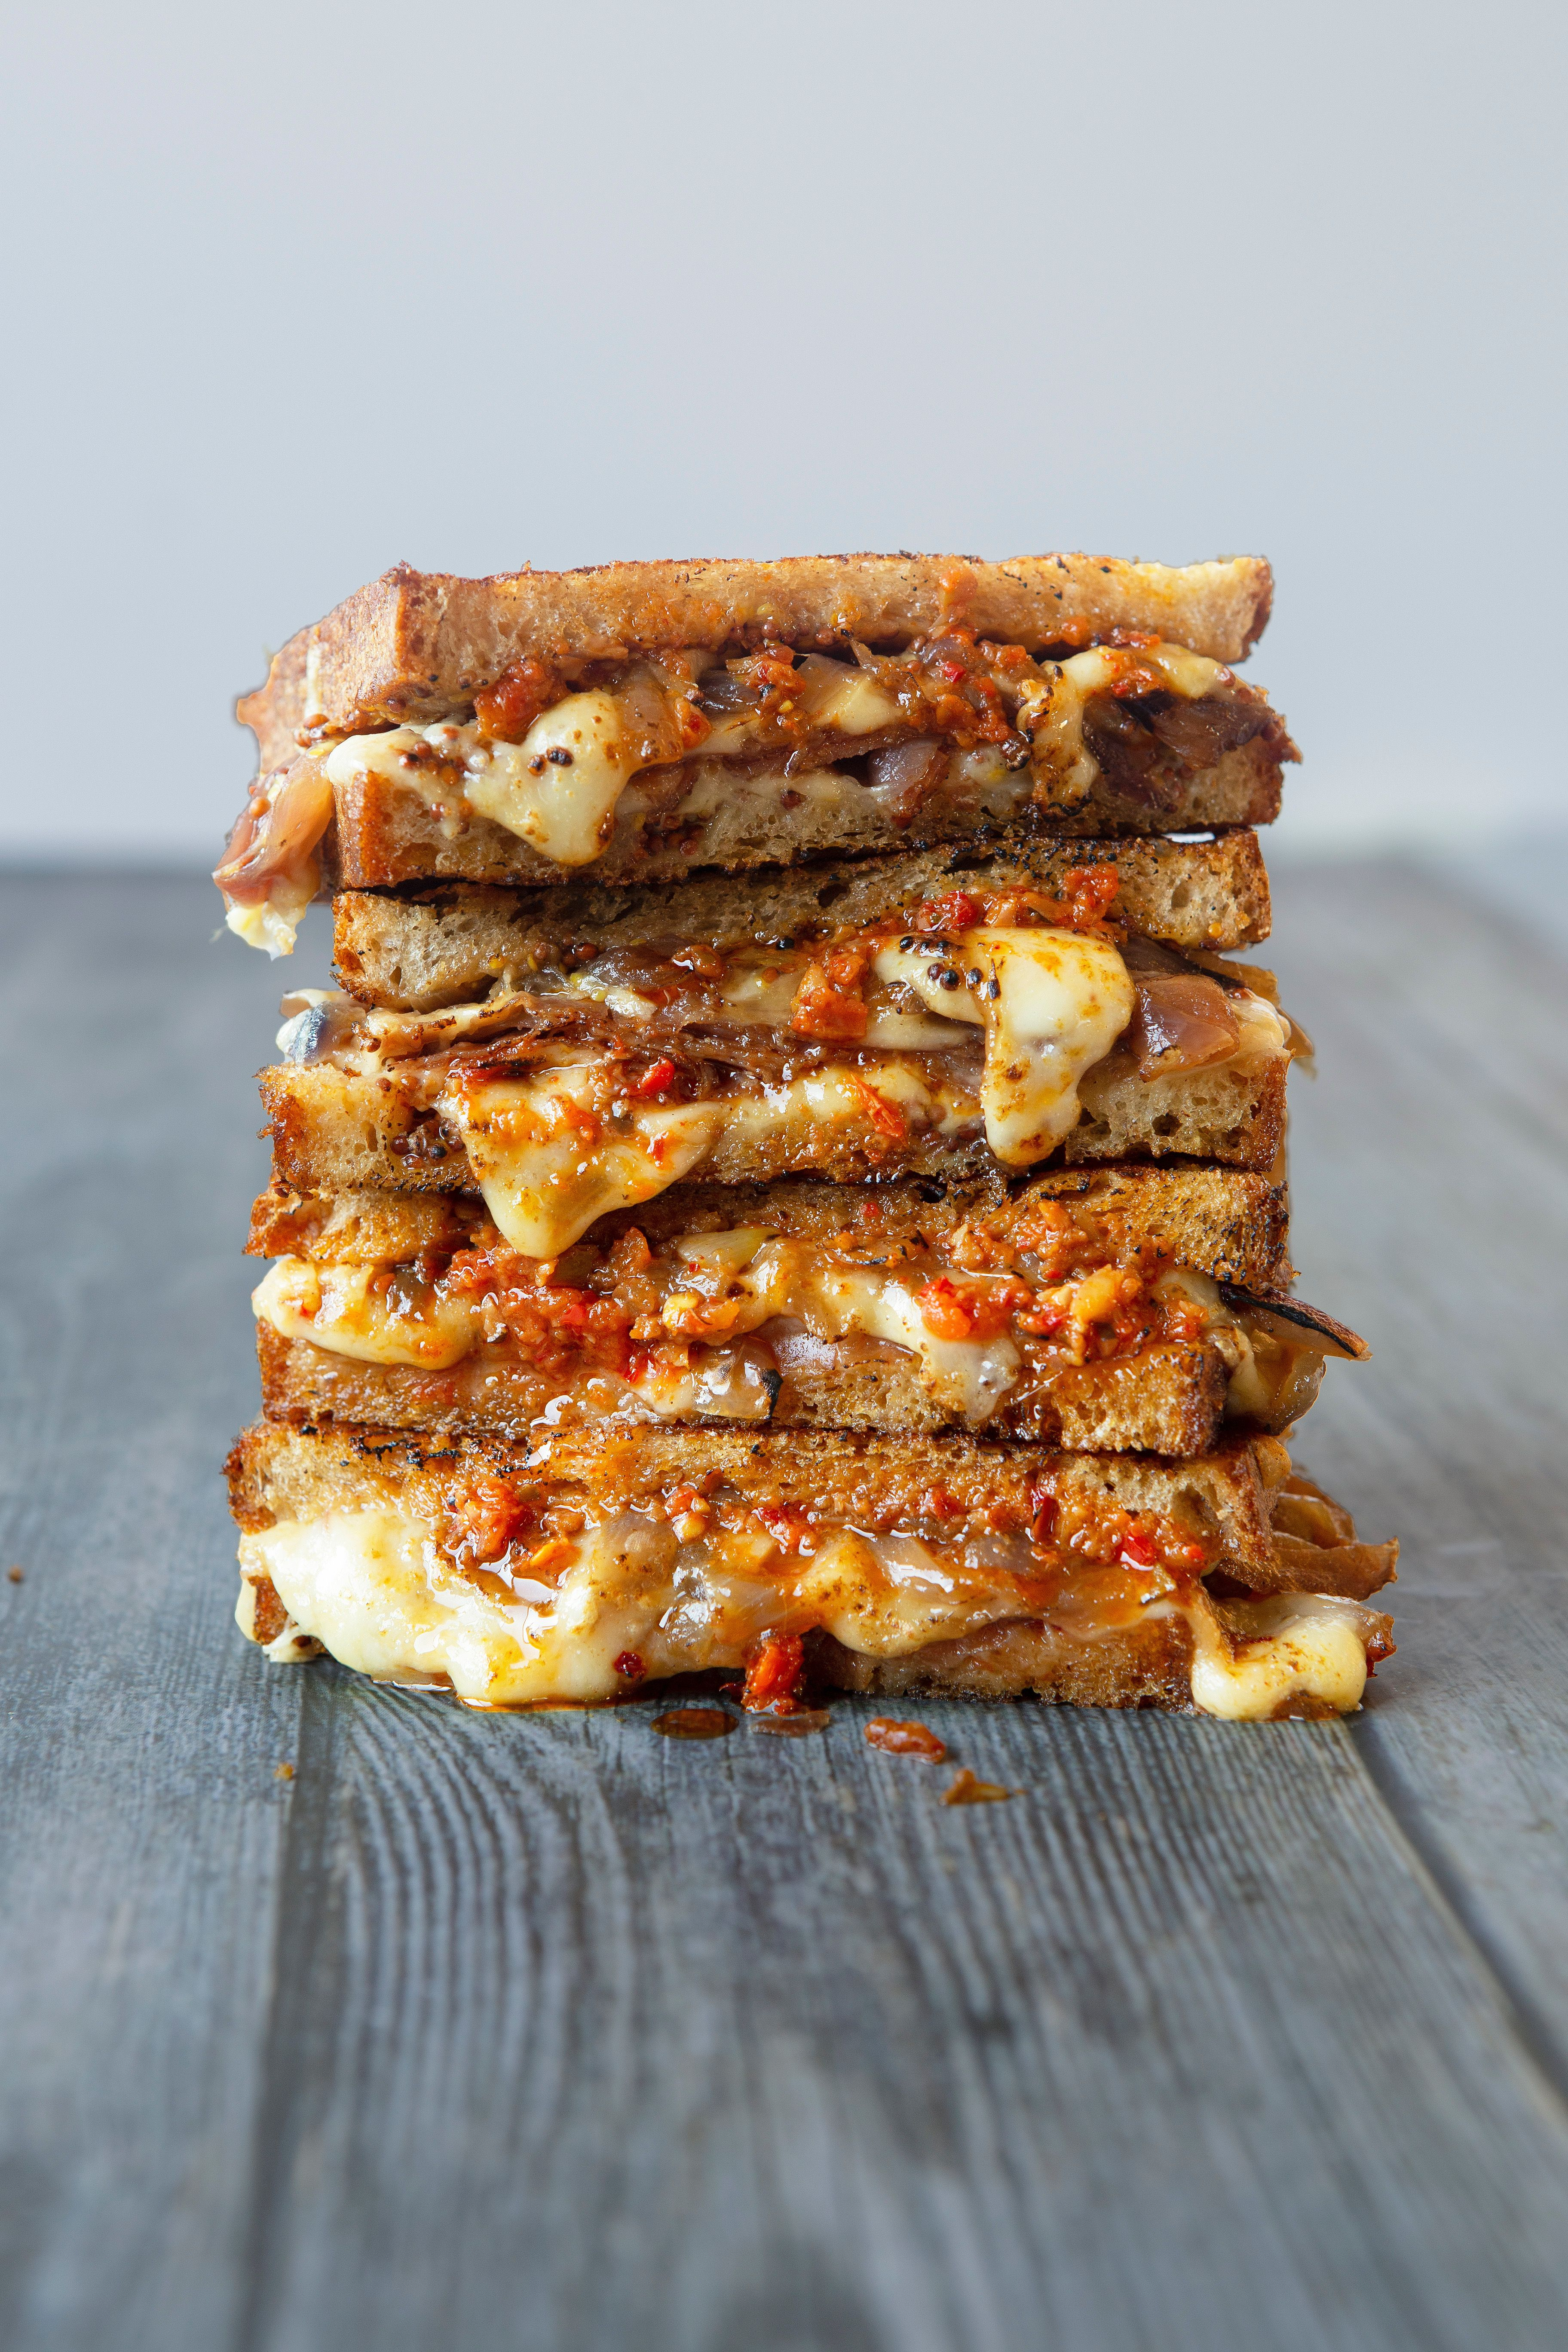 Grilled Cheese with Gruyere, Prosciutto, Caramelized Onions, Honey and Hot Pepper Spread